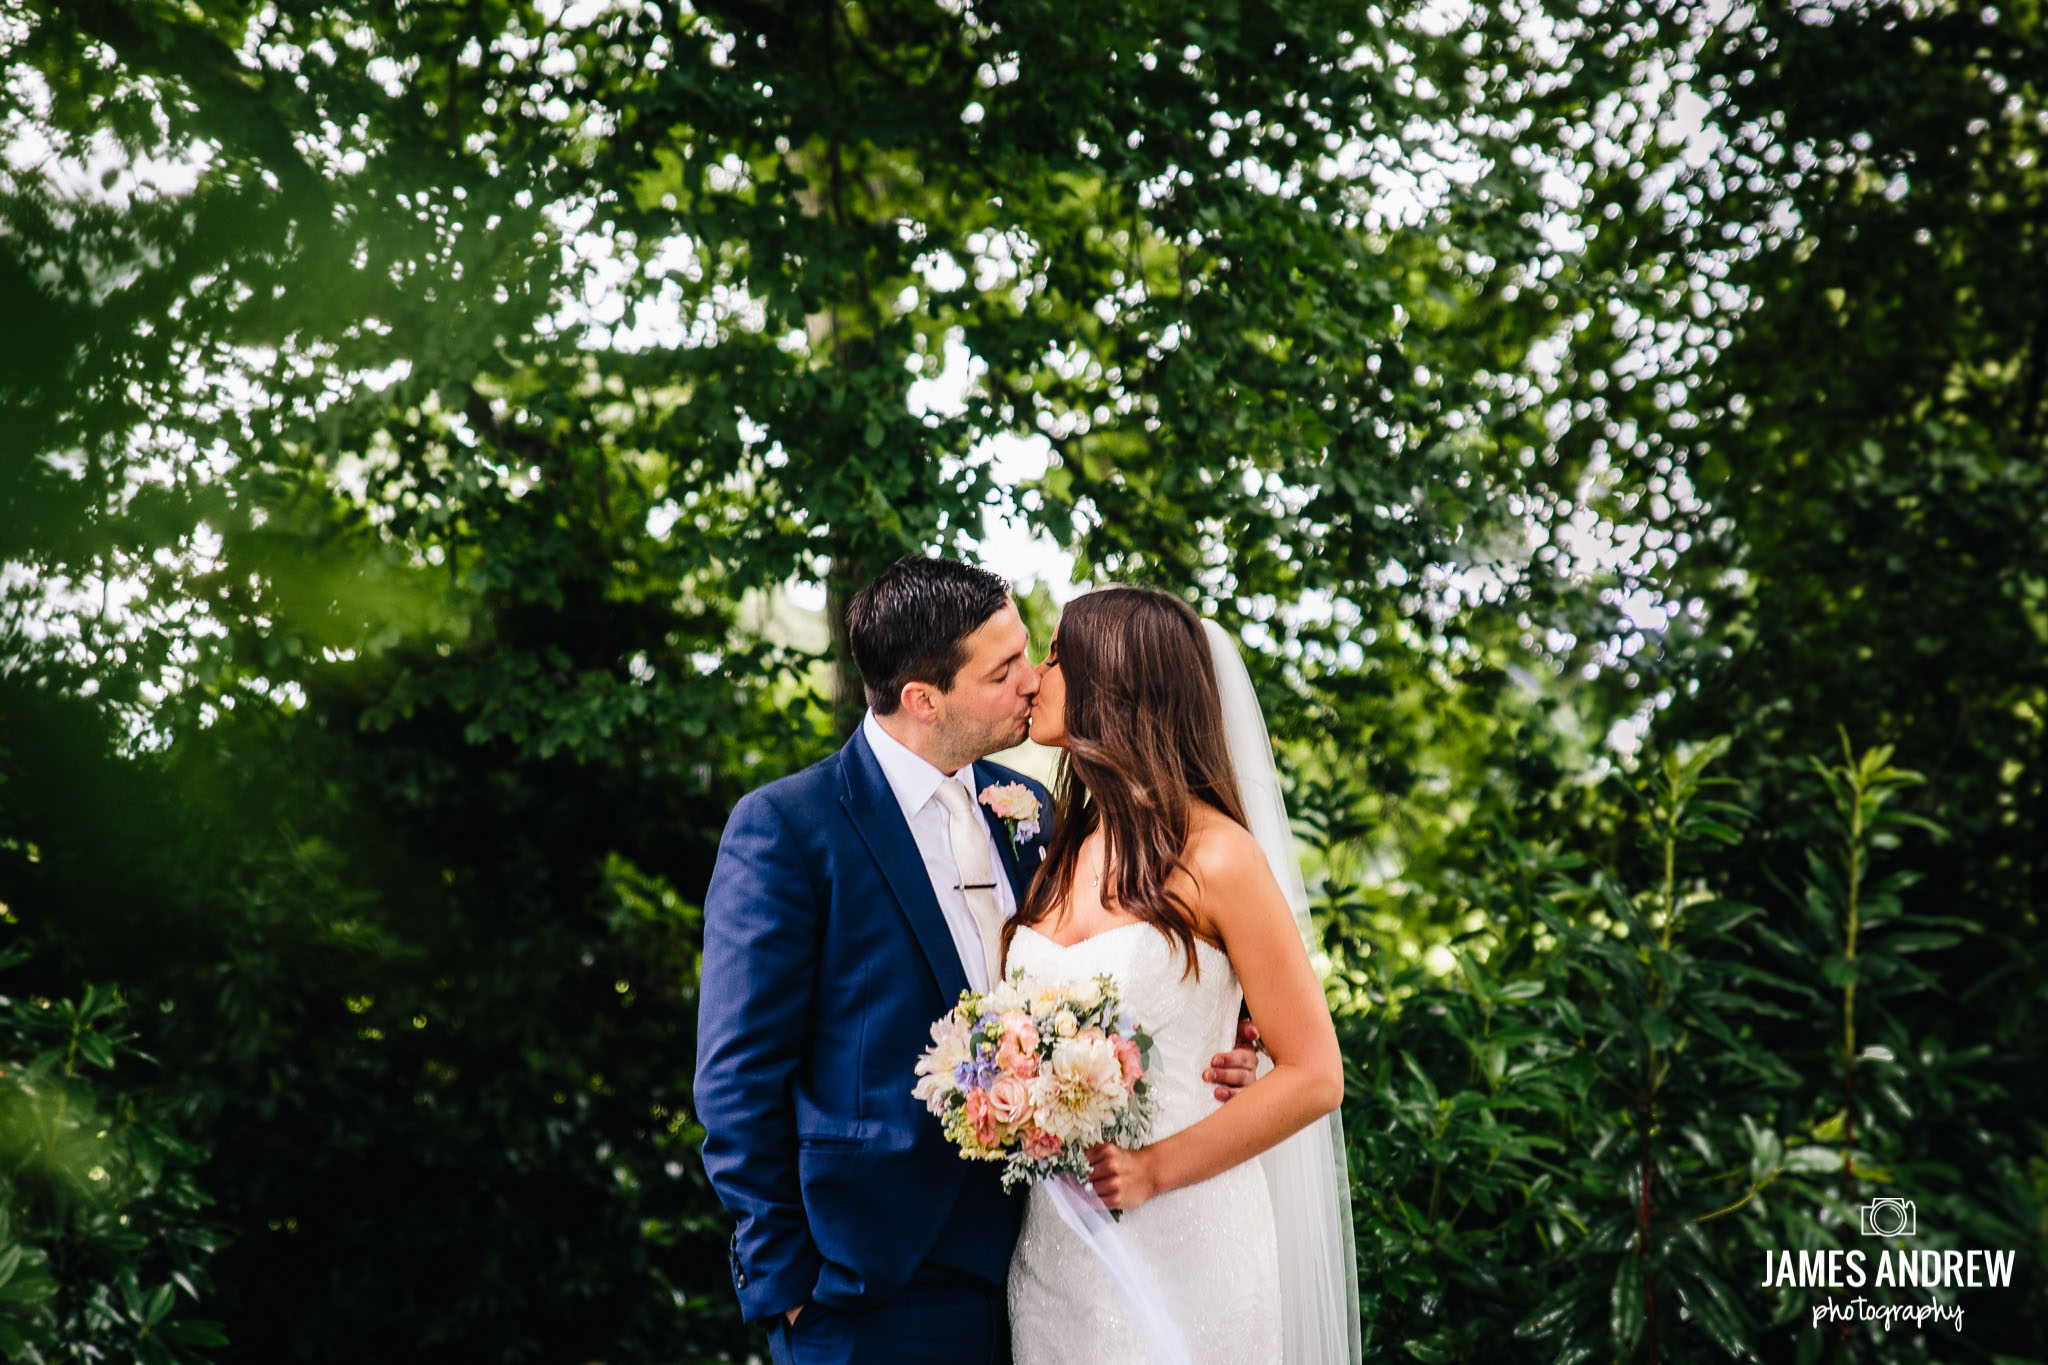 Bride And Groom Kissing In Green Woodland outdoors